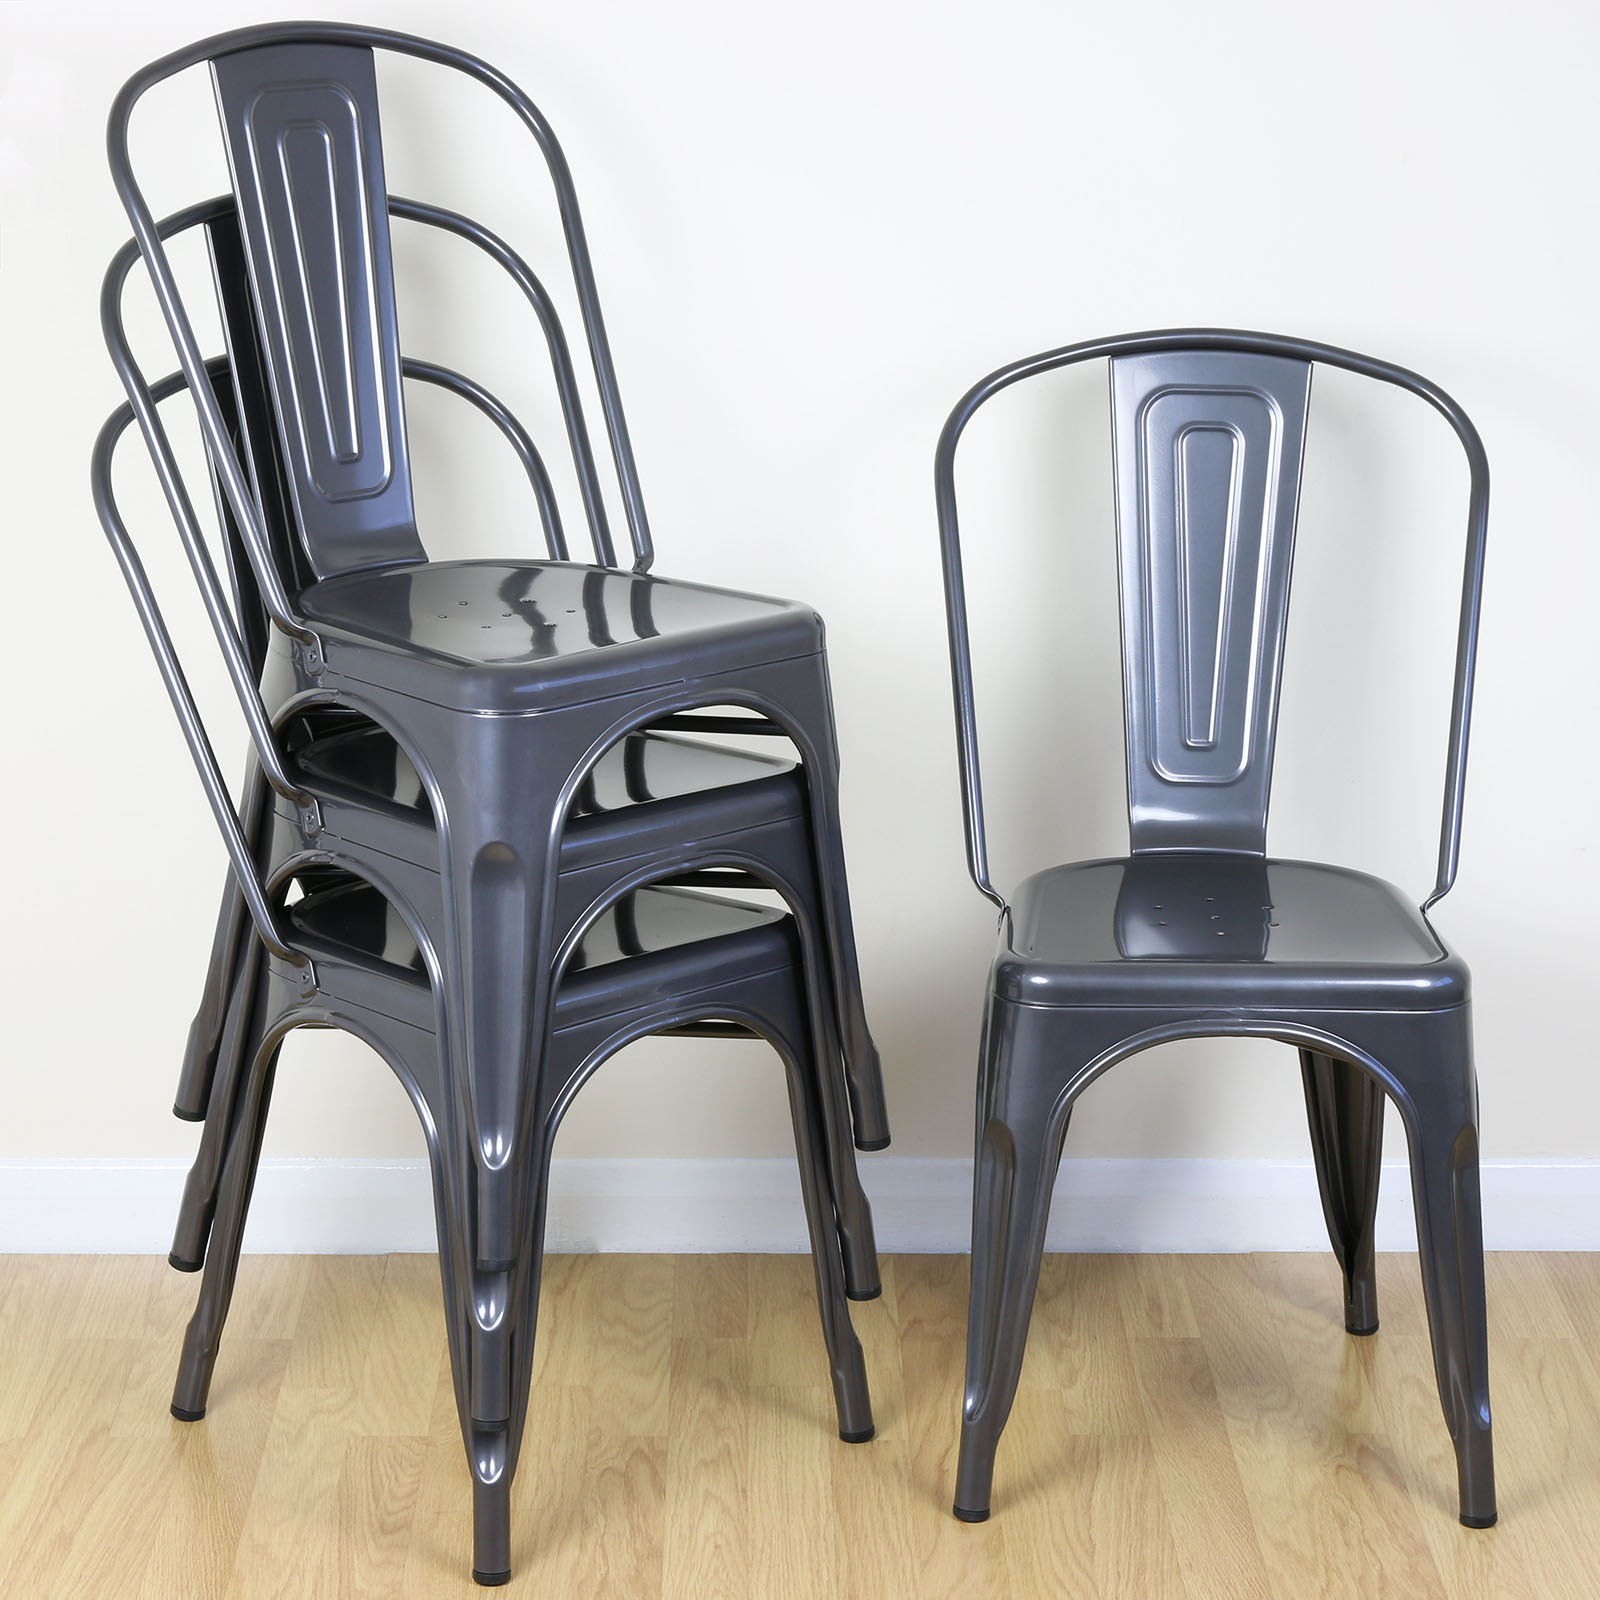 industrial bistro chairs vintage wooden childs chair set of 4 gunmetal metal dining kitchen